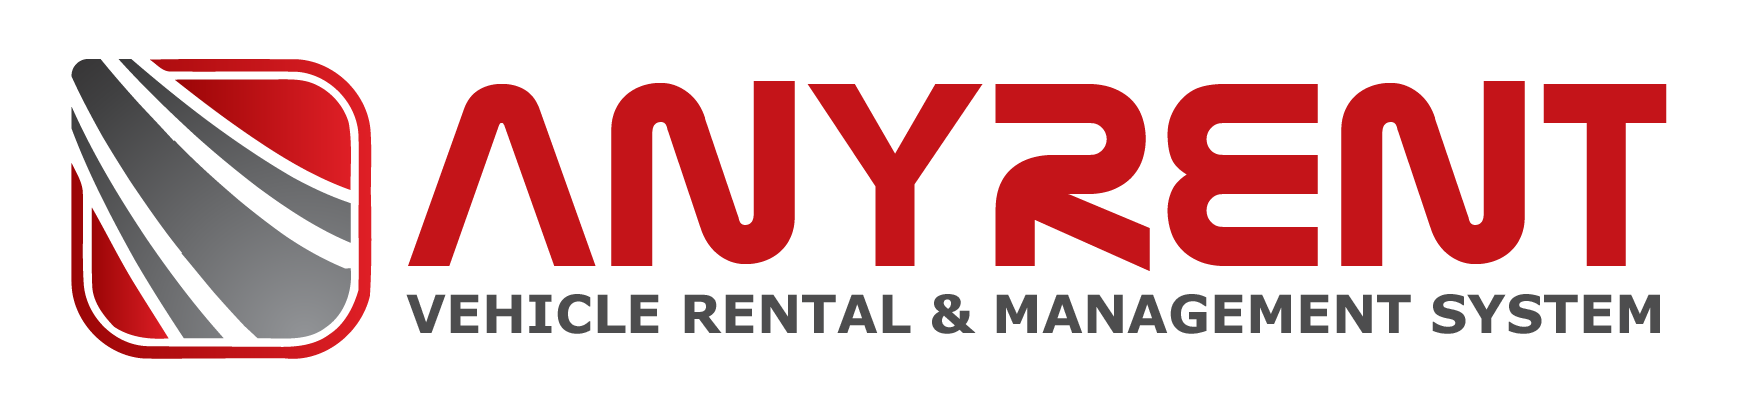 AnyRent - Vehicle Rental & Management System